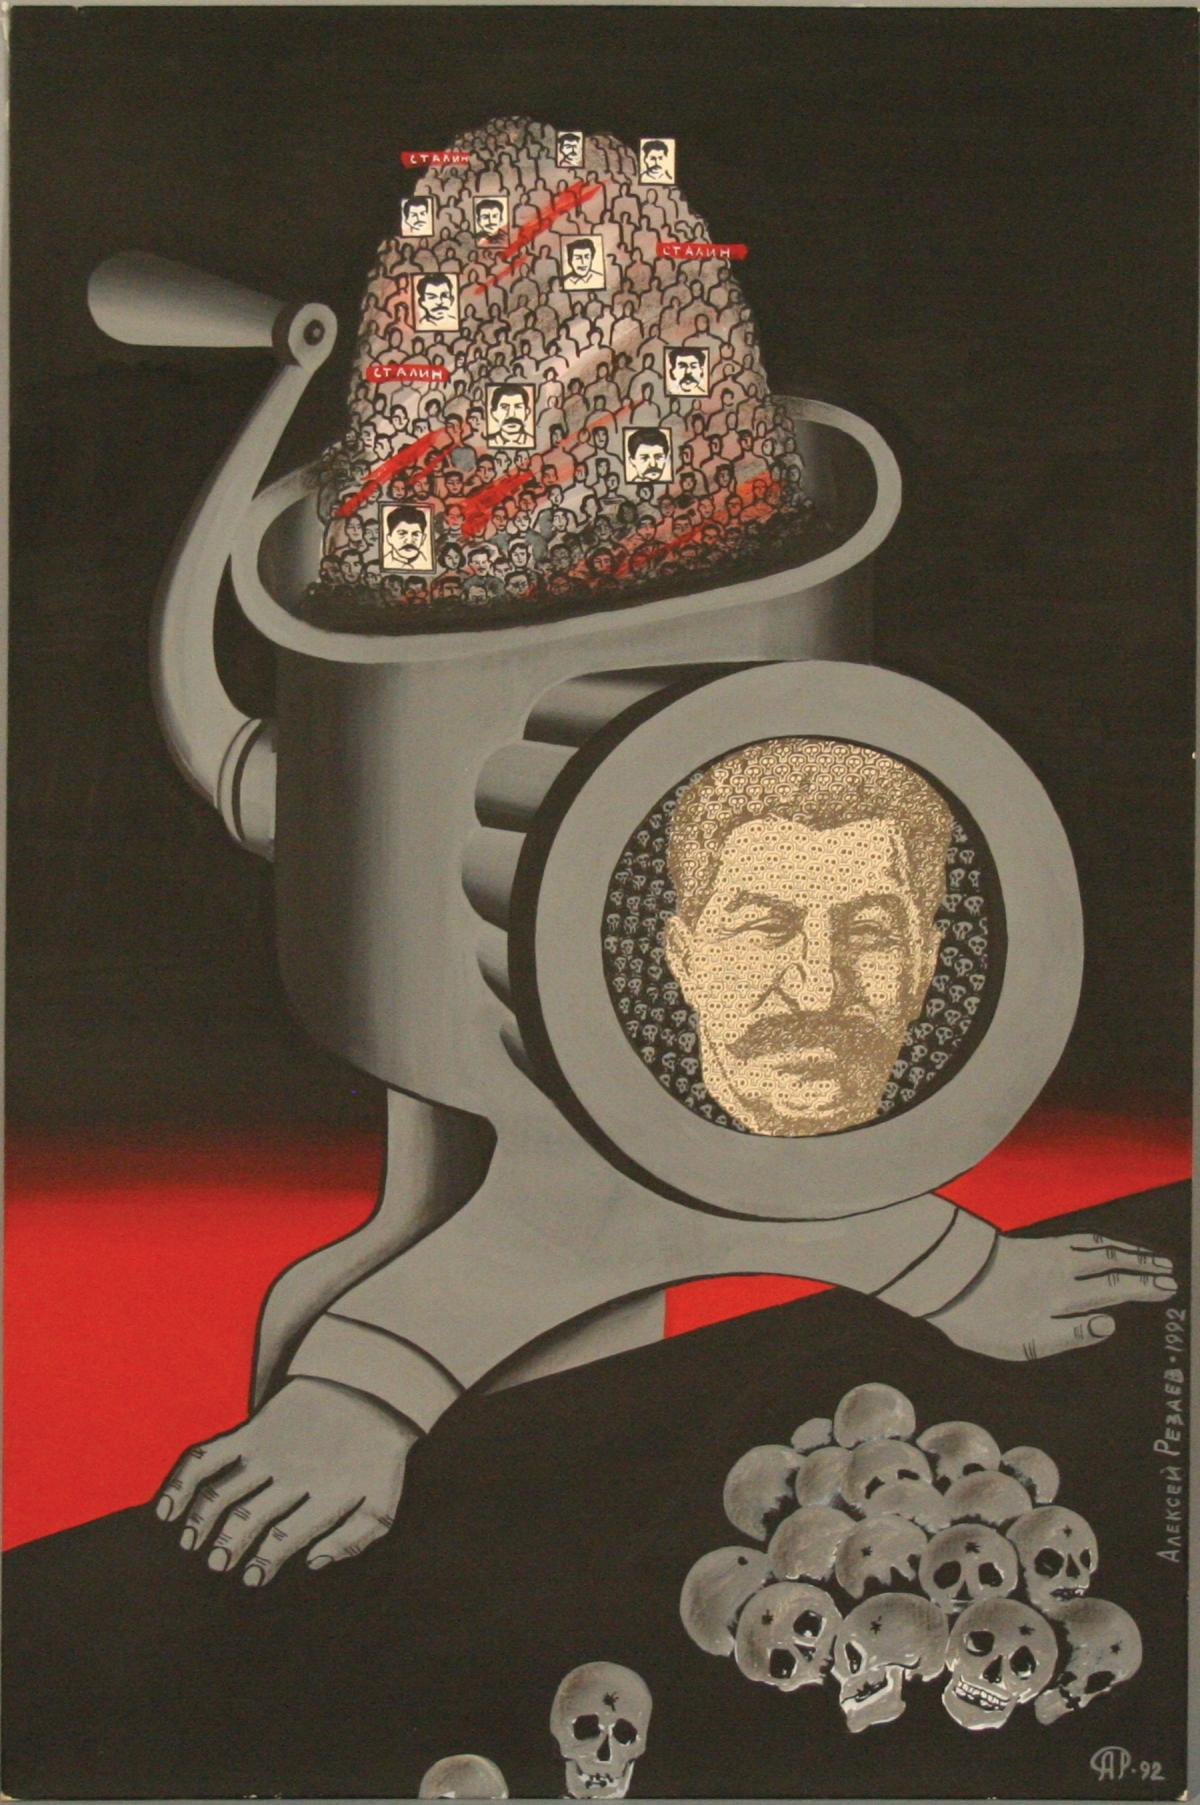 Political cartoon of Stalin as a meat grinder, which is grinding up the images of those who cross him